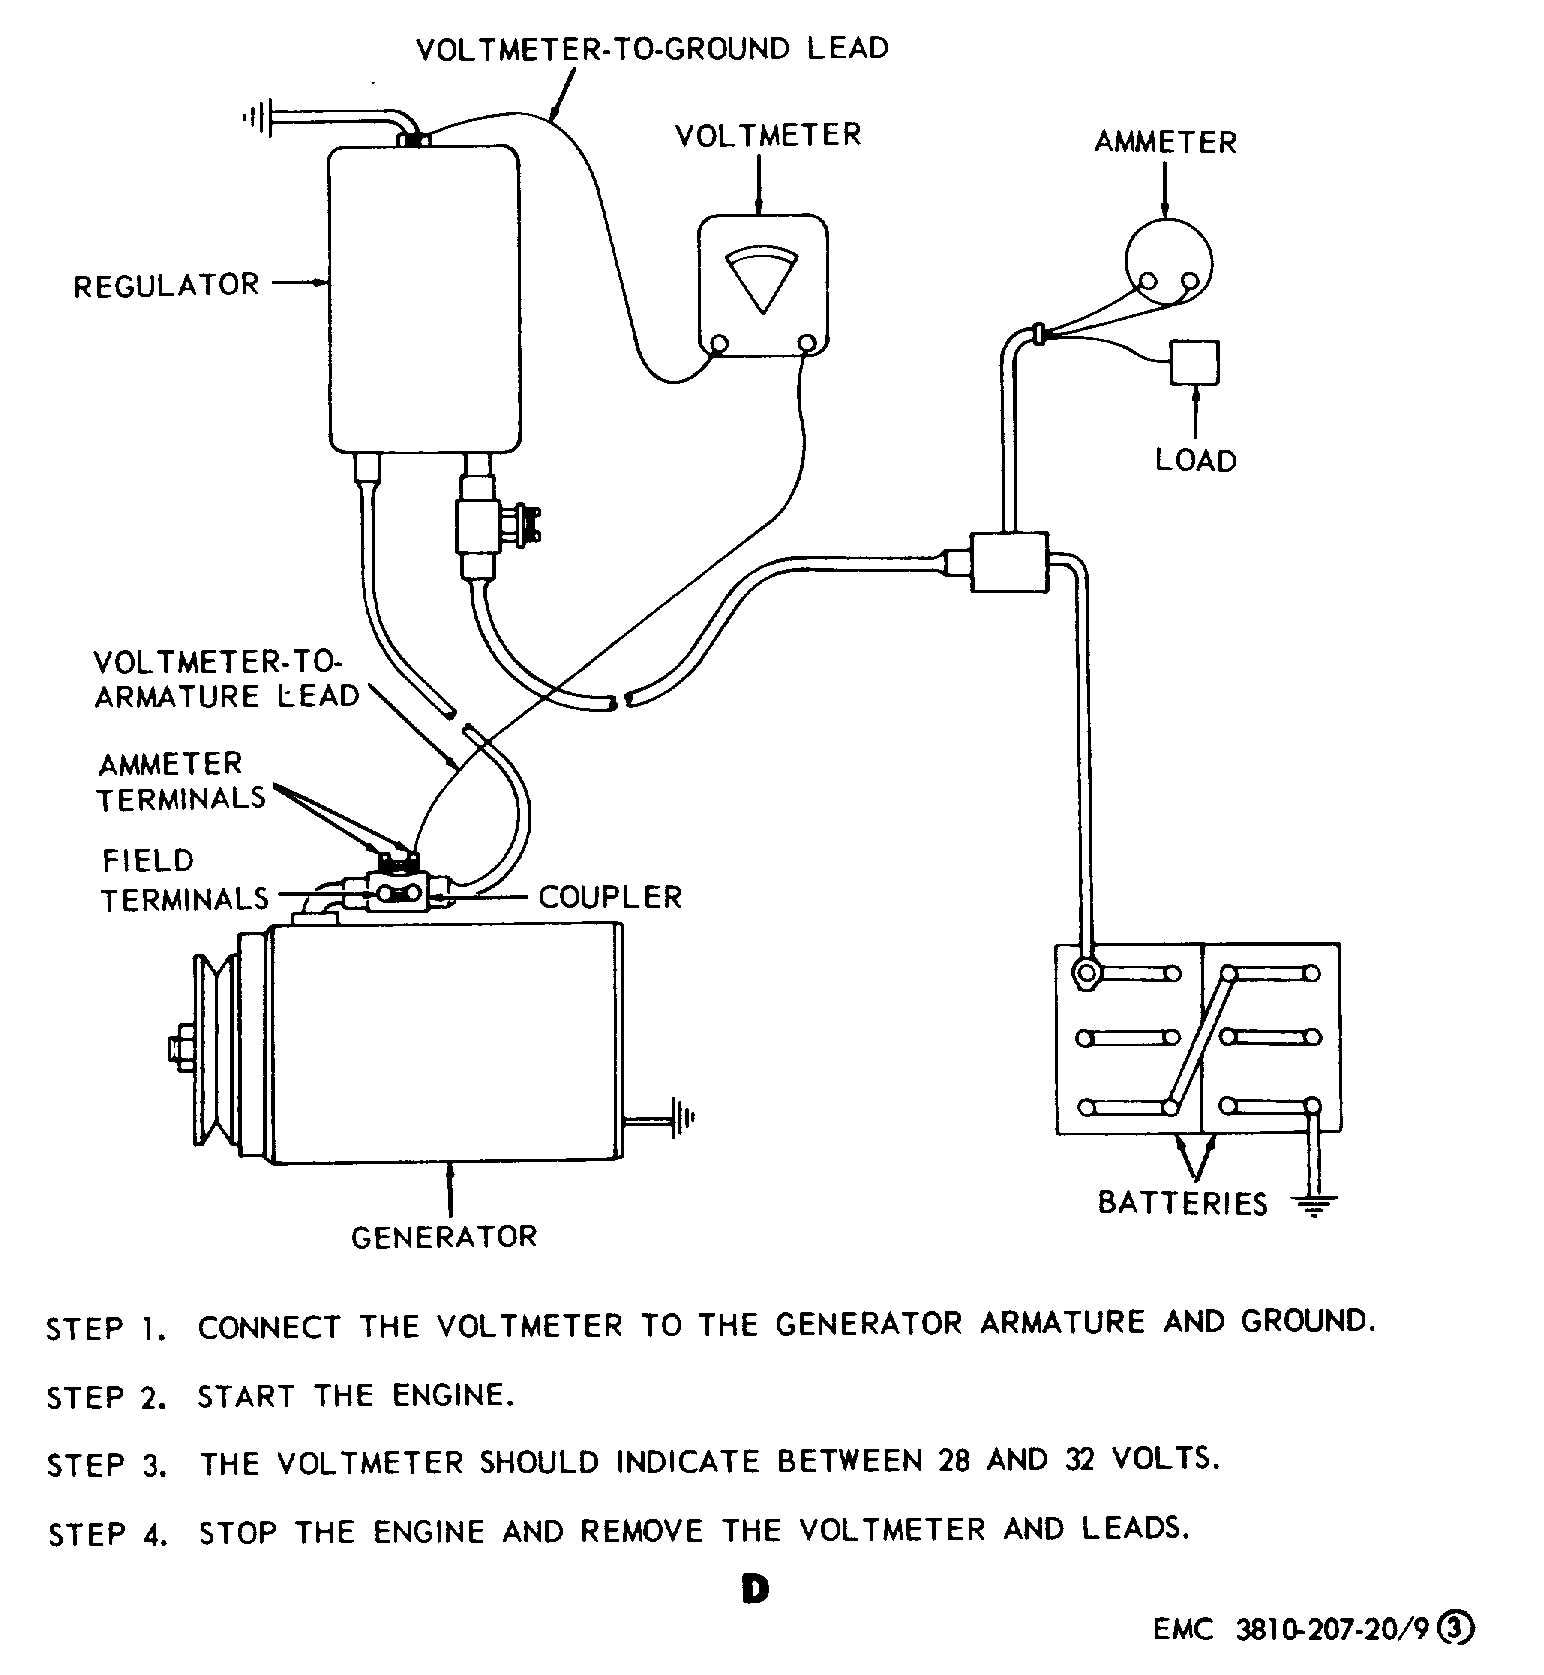 gm voltage regulator wiring diagram shovelhead system  gm voltage regulator wiring  diagram for tractor trailer